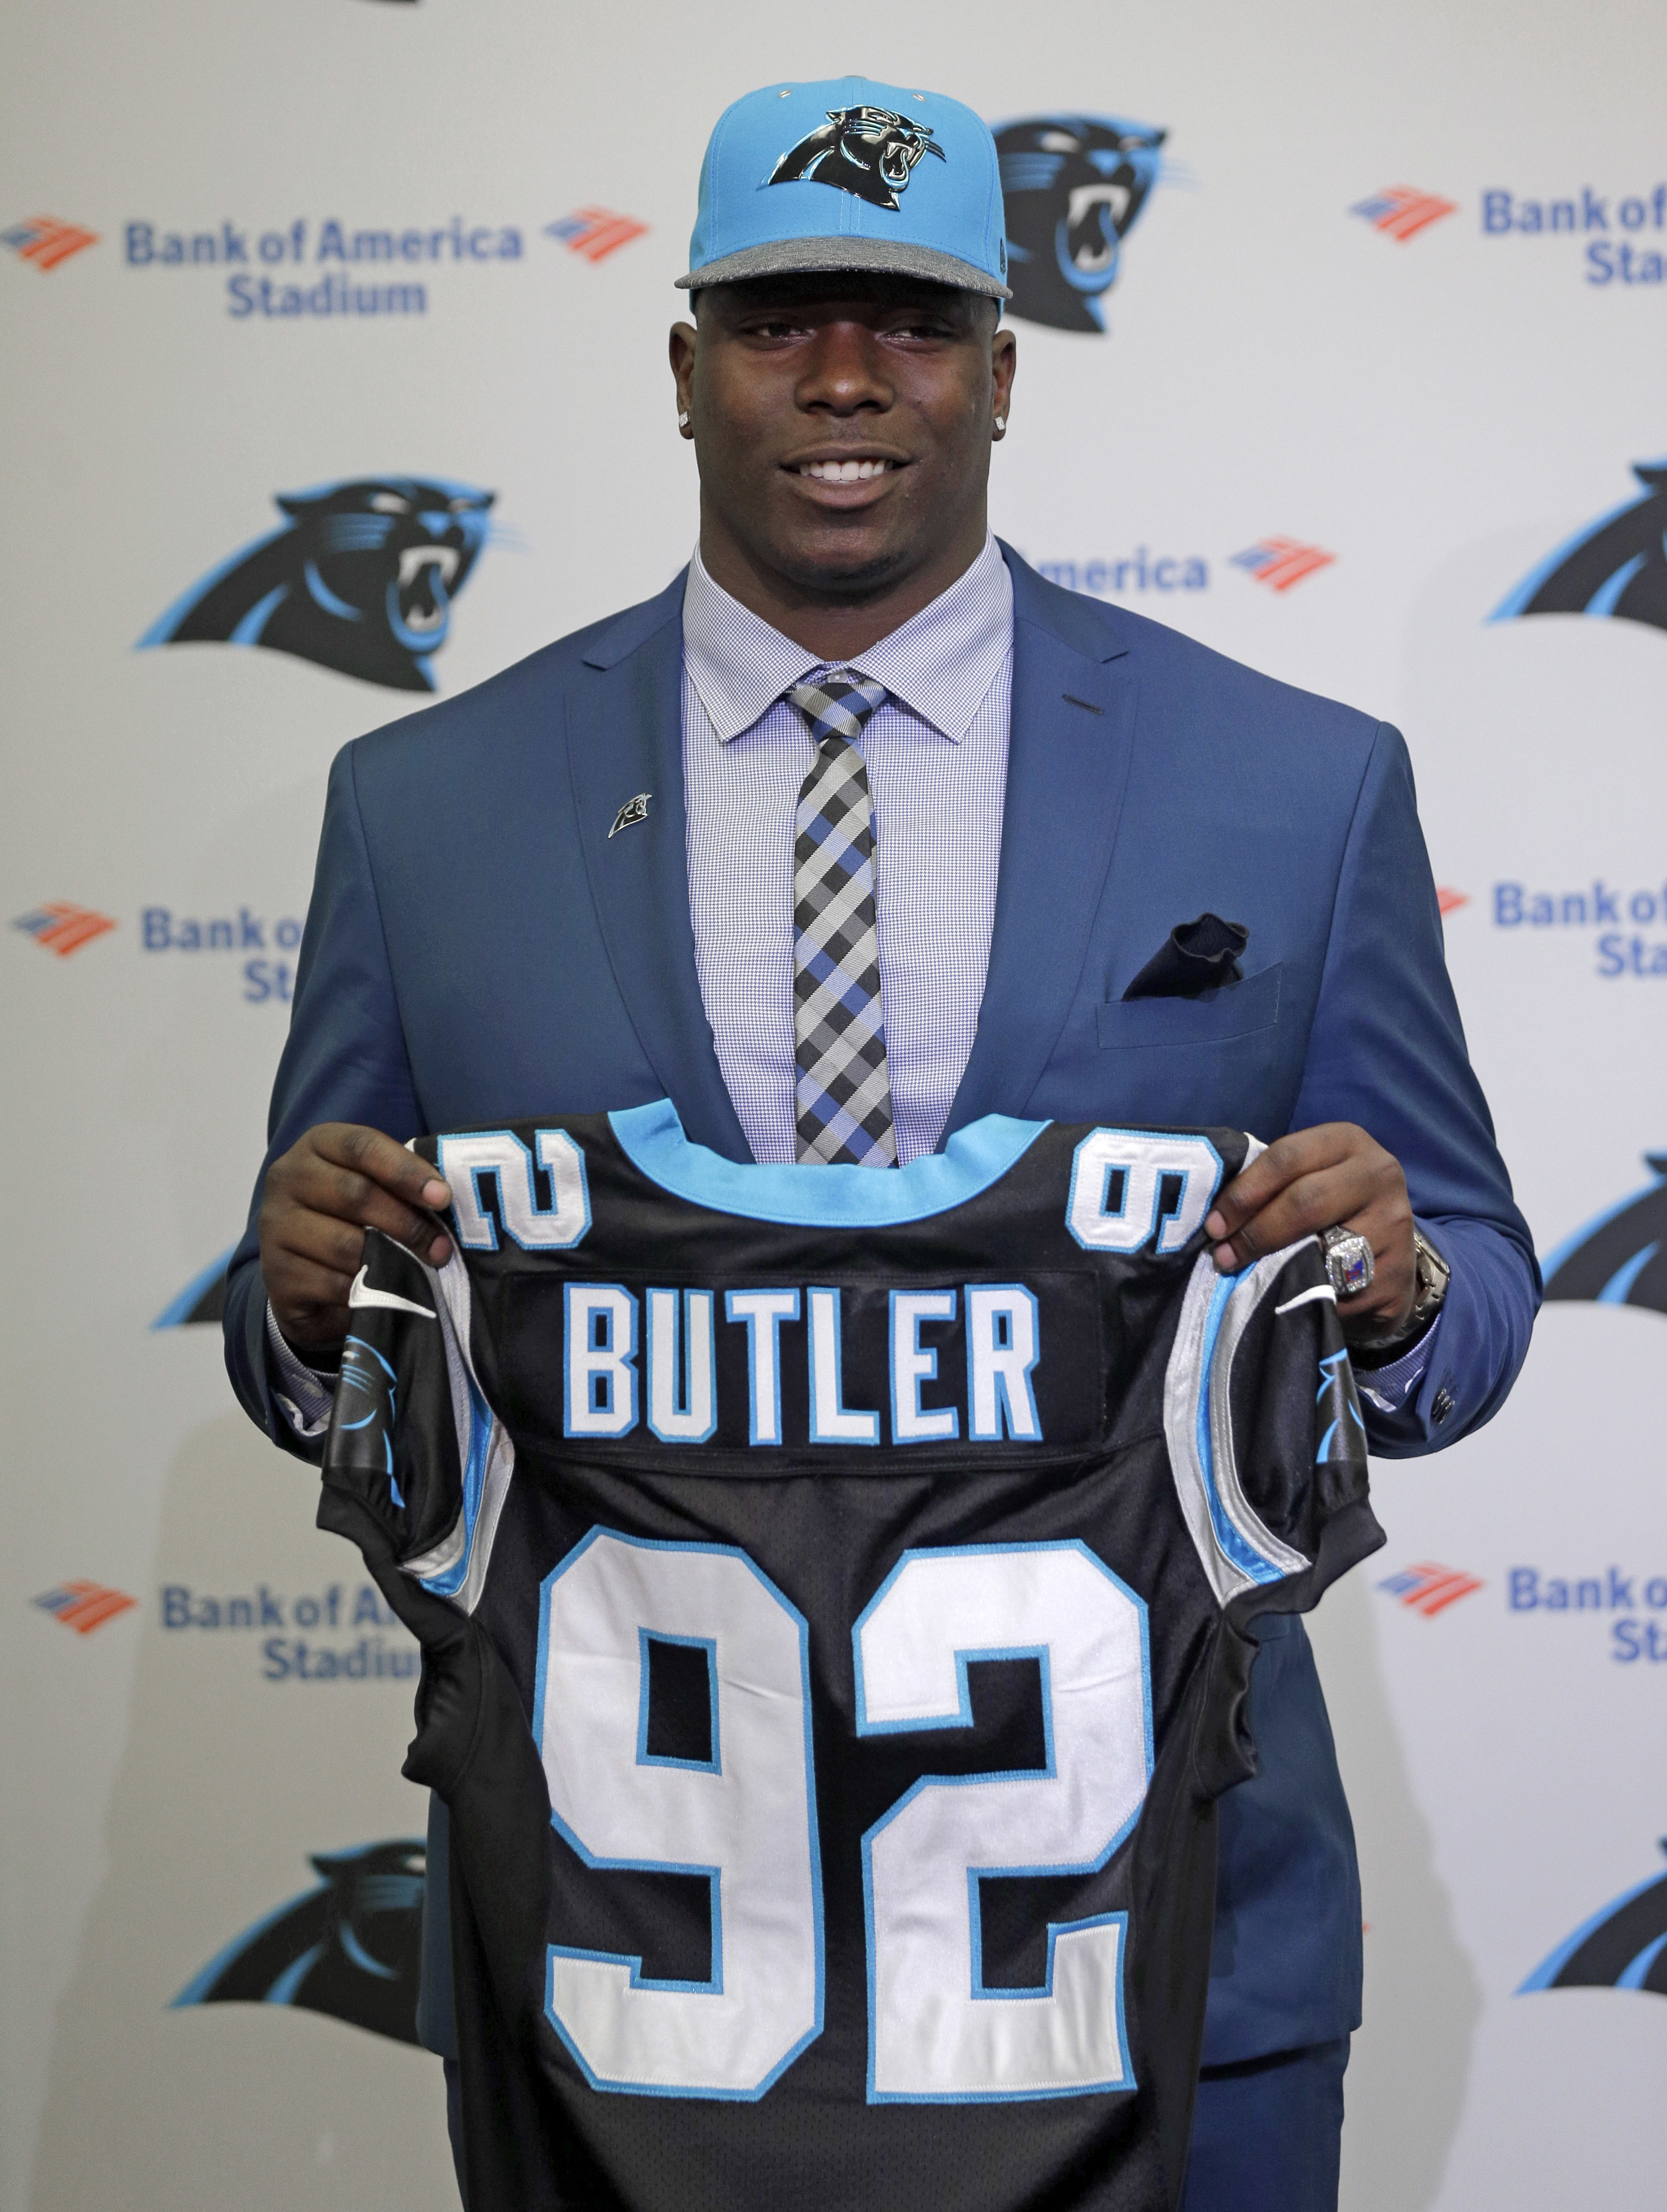 Carolina Panthers' Vernon Butler poses for a photo with a jersey during a news conference in Charlotte, N.C., Friday, April 29, 2016 after being chosen by the NFL football team with the 30th pick of the first round of the NFL Draft. (AP Photo/Chuck Burton